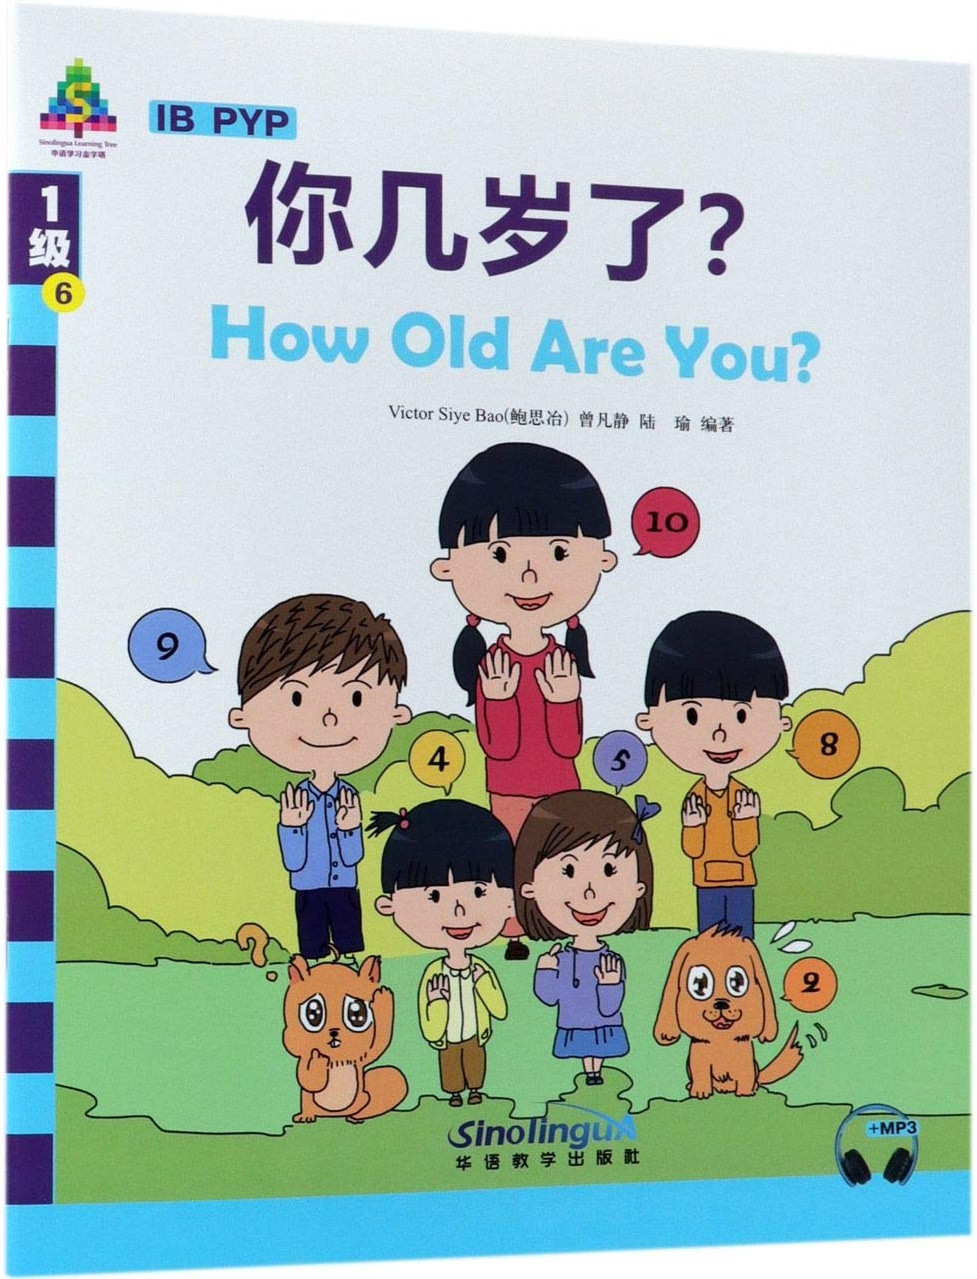 How Old Are You? - Sinolingua Reading Tree for IB PYP